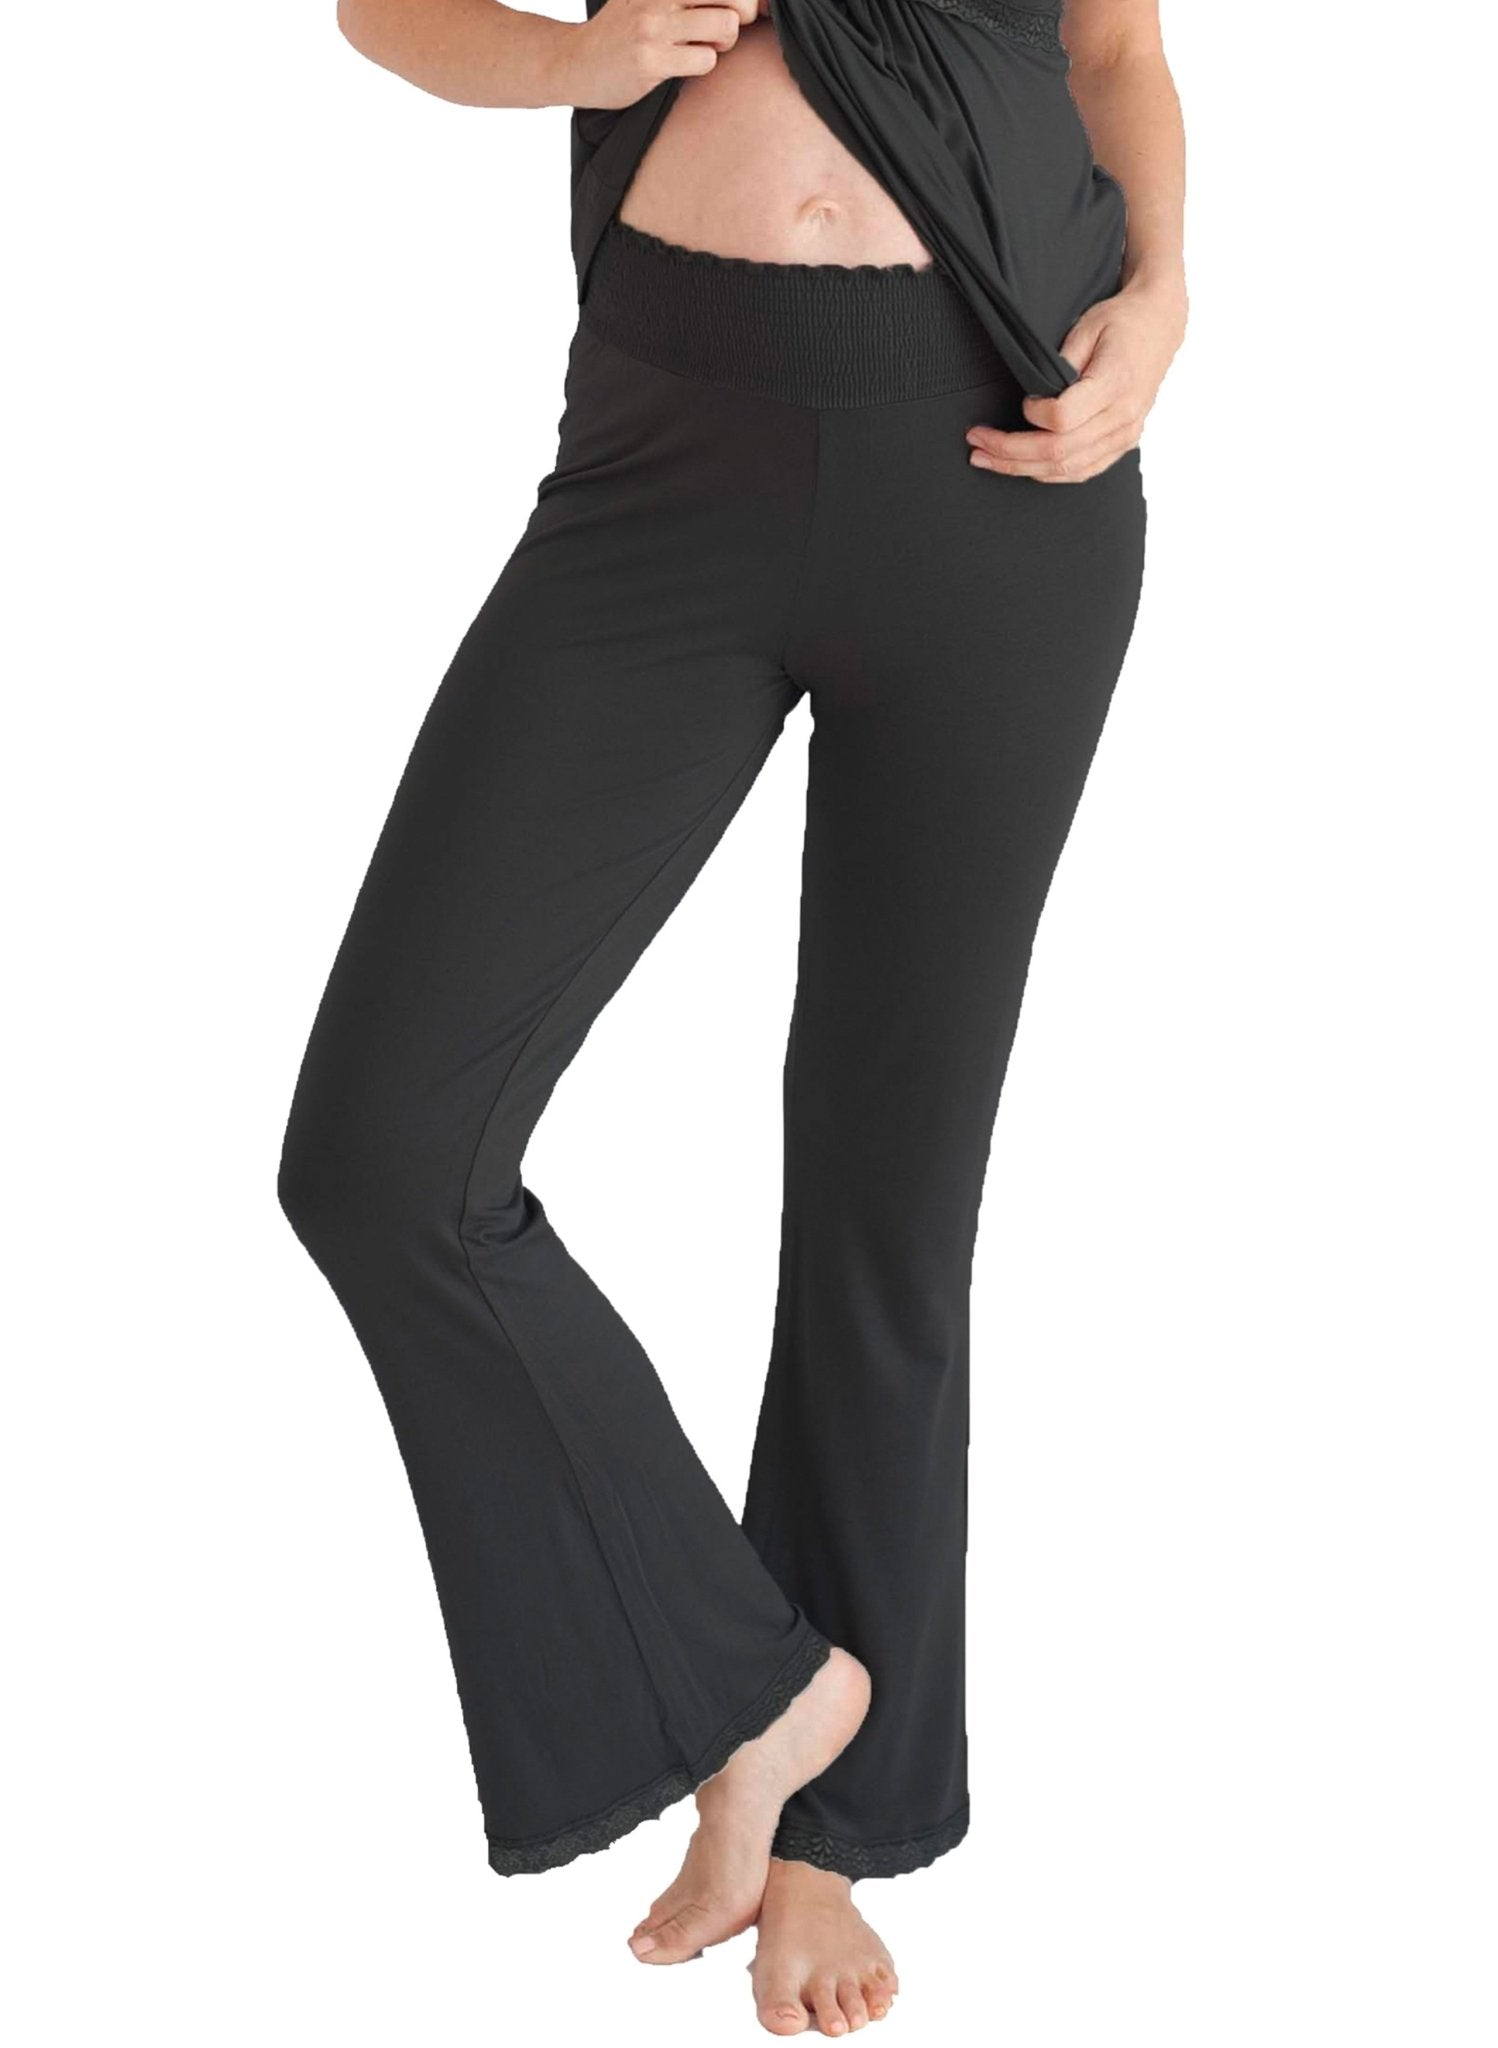 Before & After Maternity Loungepant - Black - Mums and Bumps